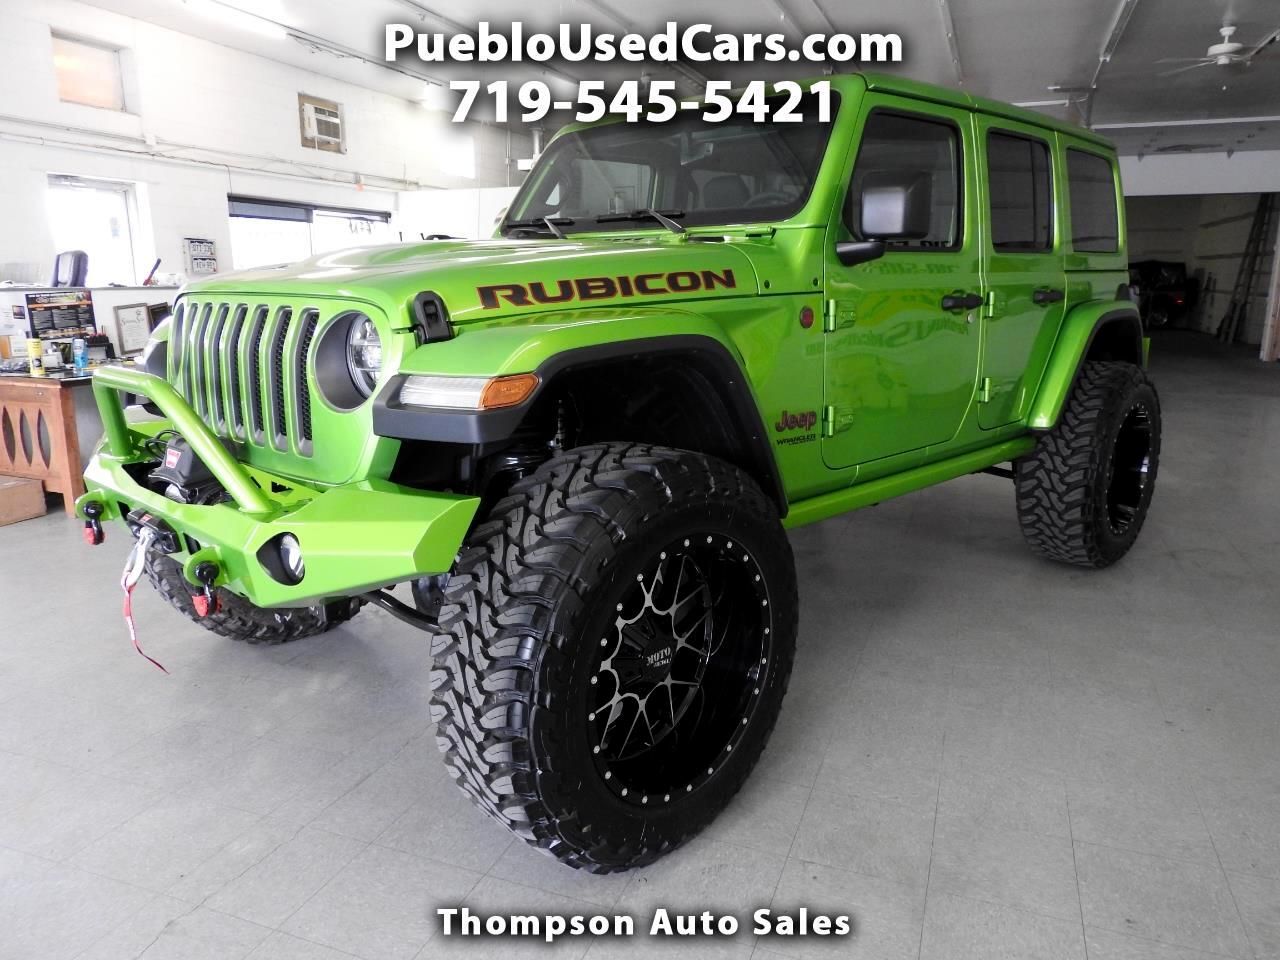 Cars For Sale In Pueblo >> Used 2019 Jeep Wrangler Unlimited Rubicon For Sale In Pueblo